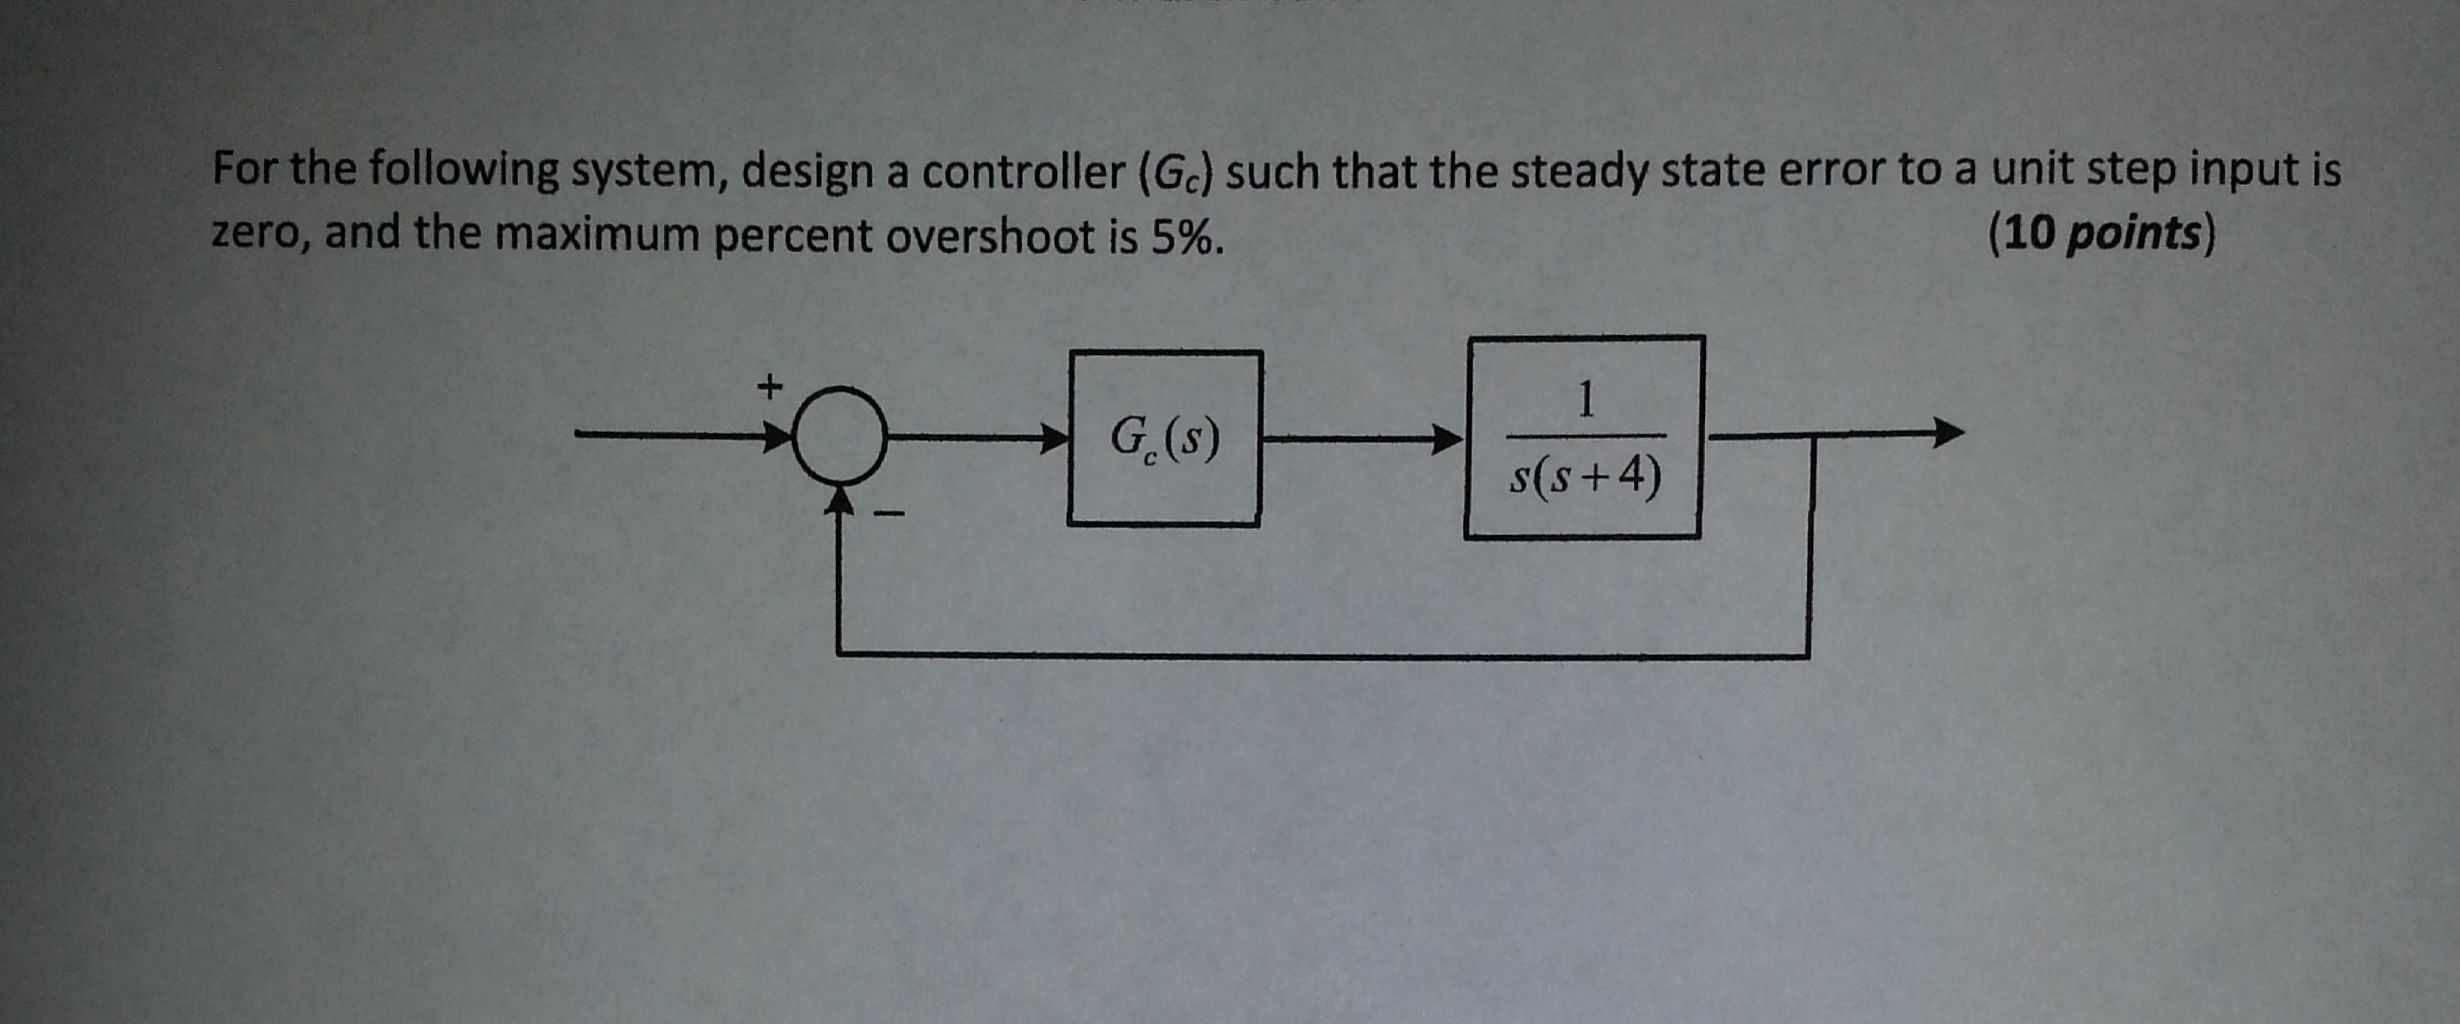 For the following system, design a controller (Gc)